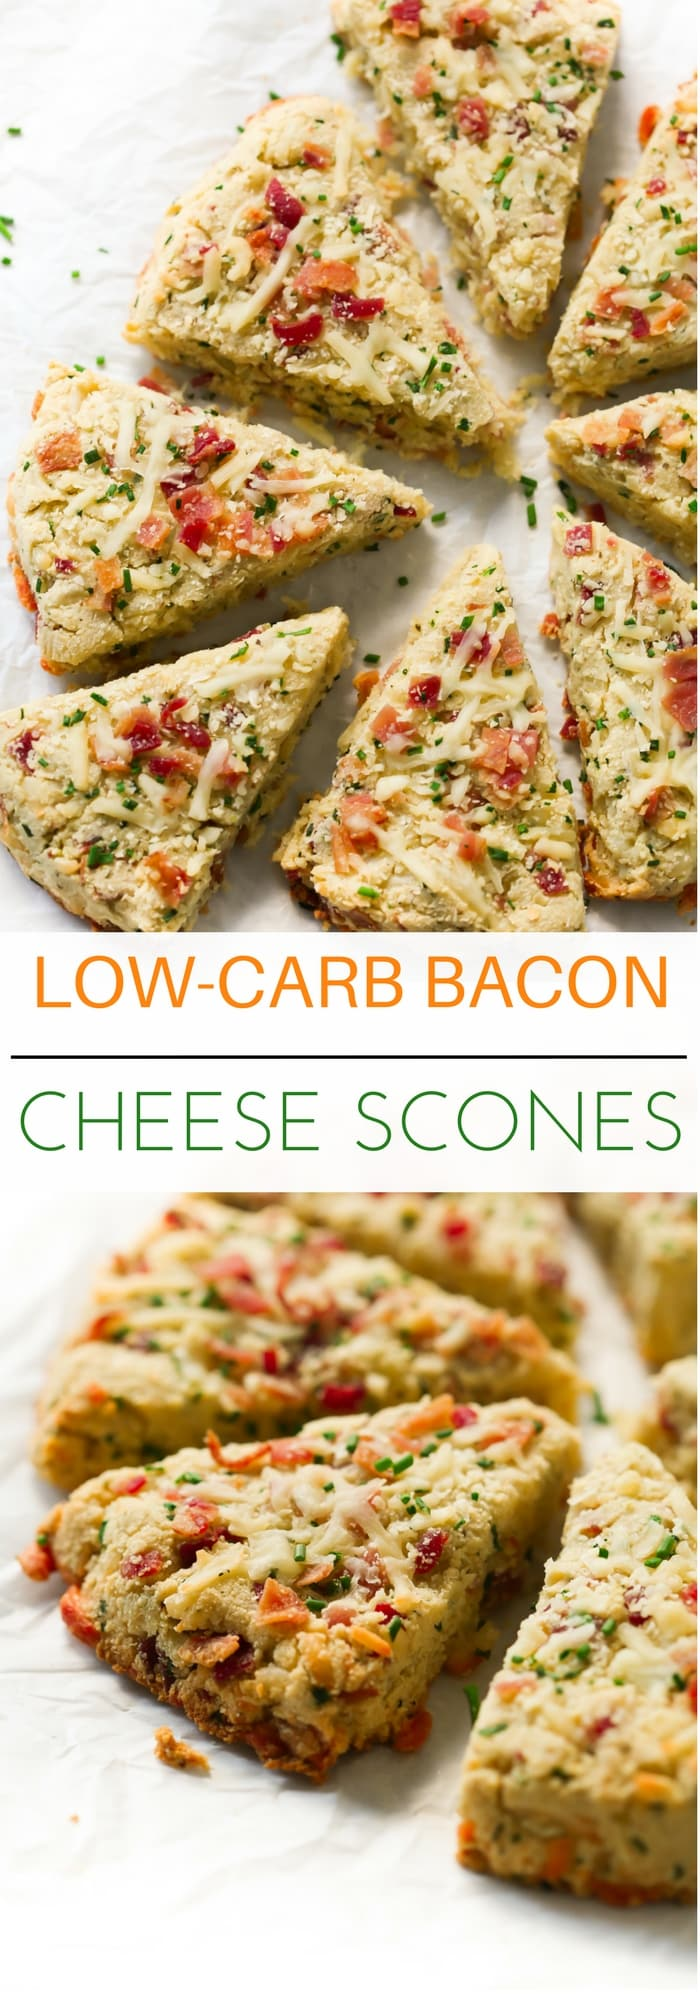 Low-carb Bacon and Cheese Scones - These Low-carb Bacon and Cheese Scones are gluten-free, ultra-simple to whip up and they are made with almond flour, coconut flour, bacon, cheese and chives.